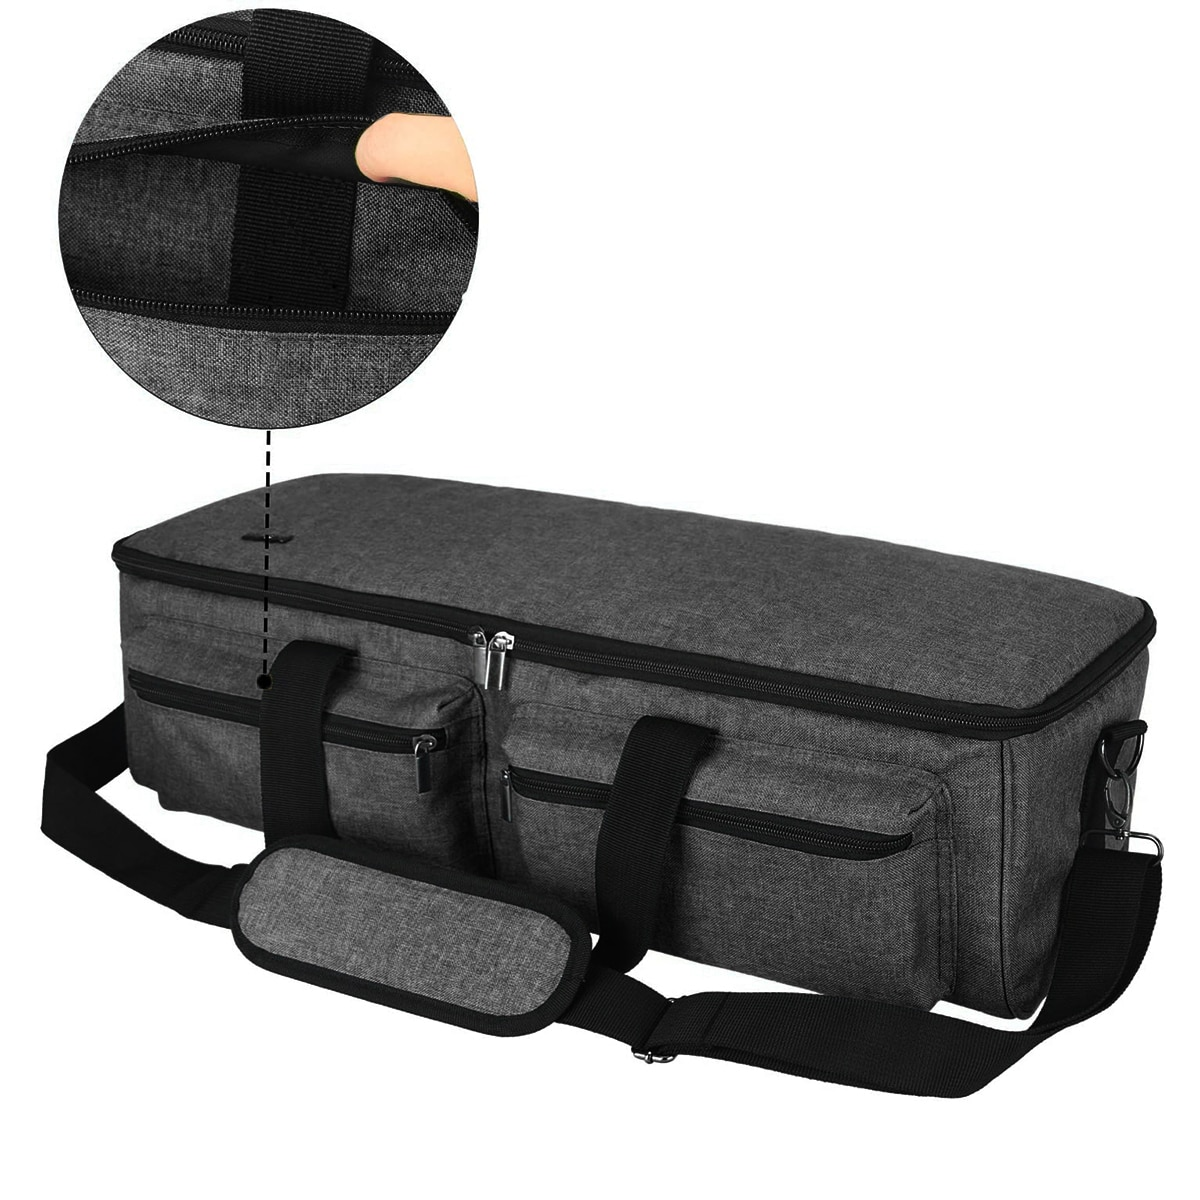 Carrying Bag Tote Bag Storage Bag for Explore Air Maker Silhouette Cameo 4 Arts Crafts Sewing Storage